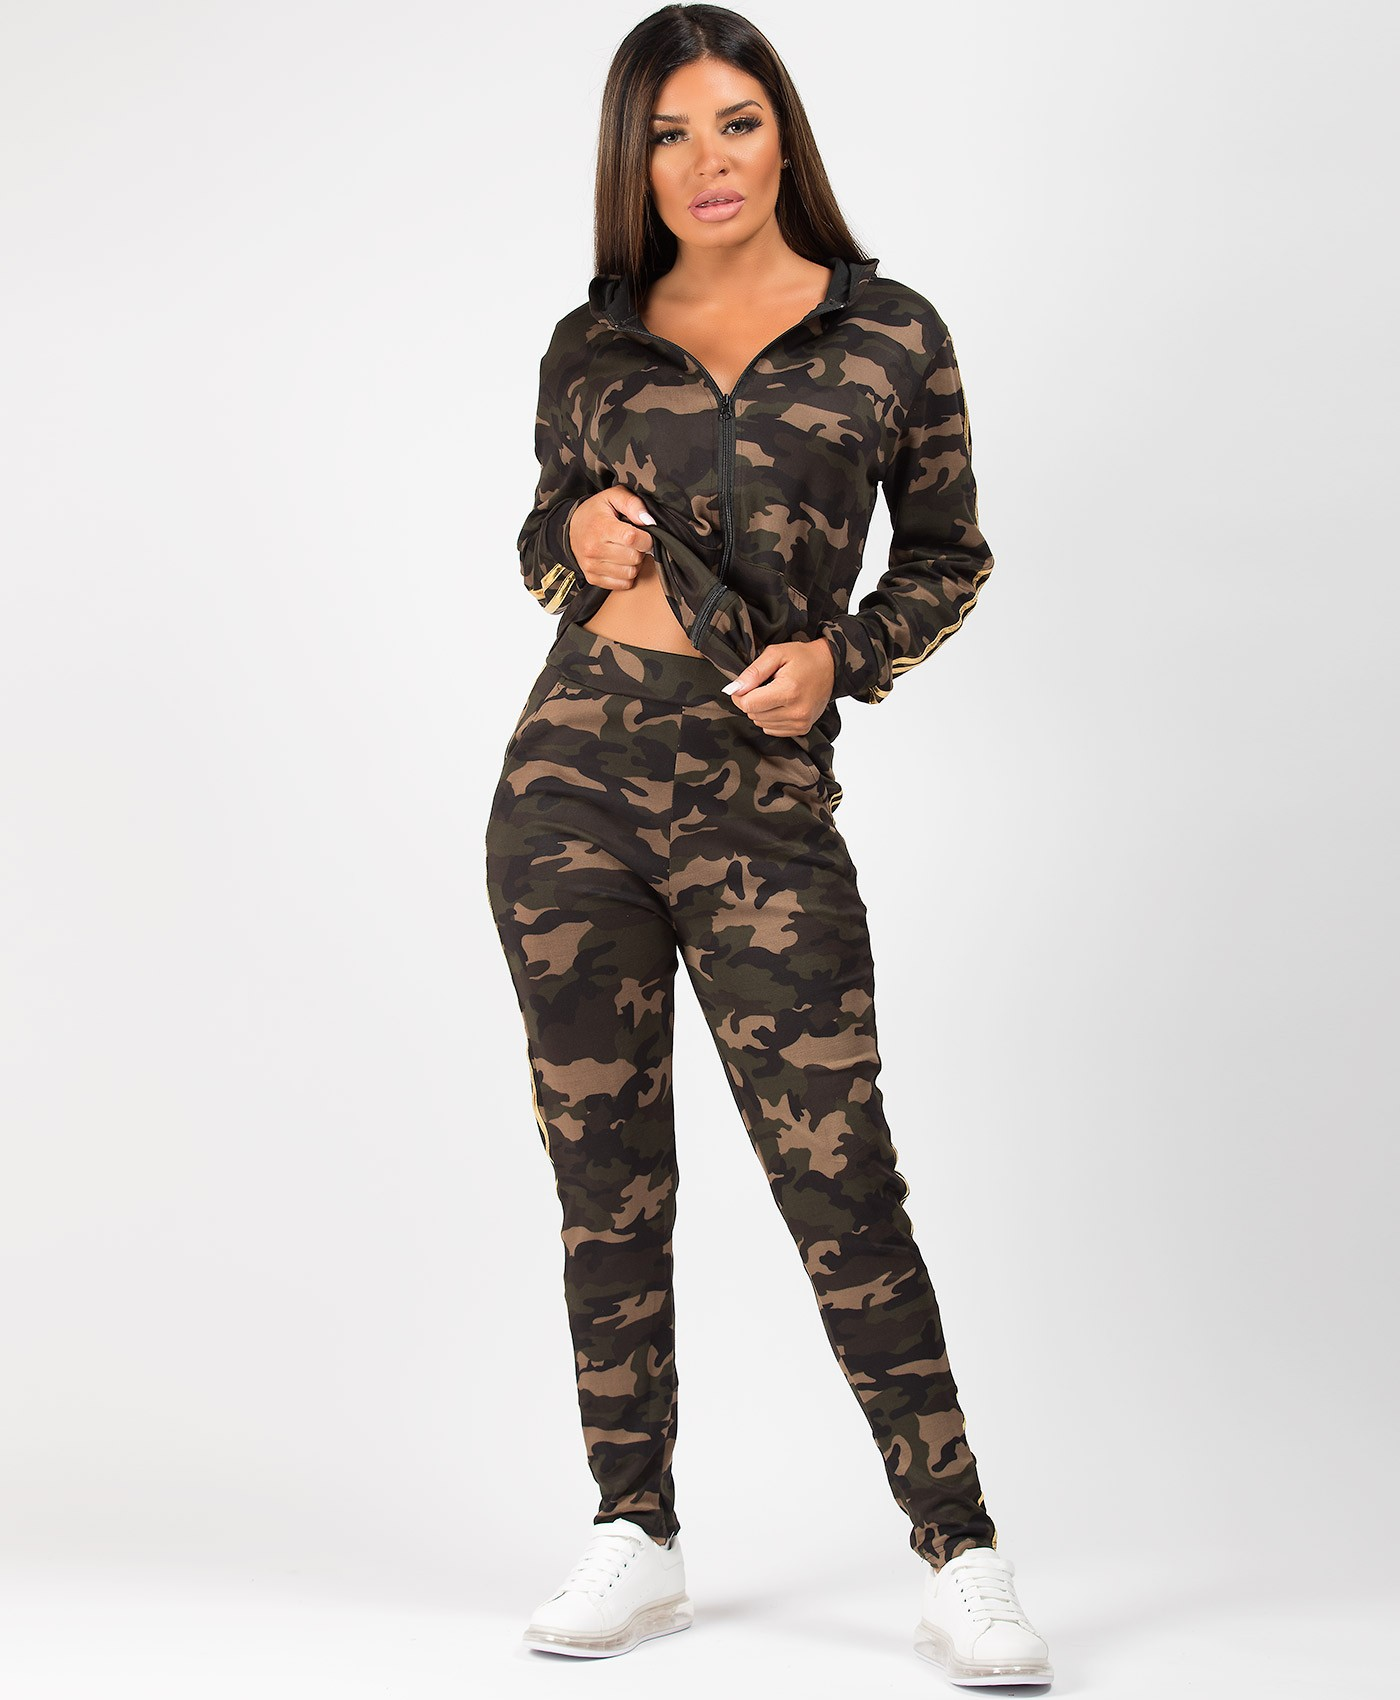 Khaki-Gold-Camouflage-Twin-Stripe-Tracksuit-Loungewear-Set-1